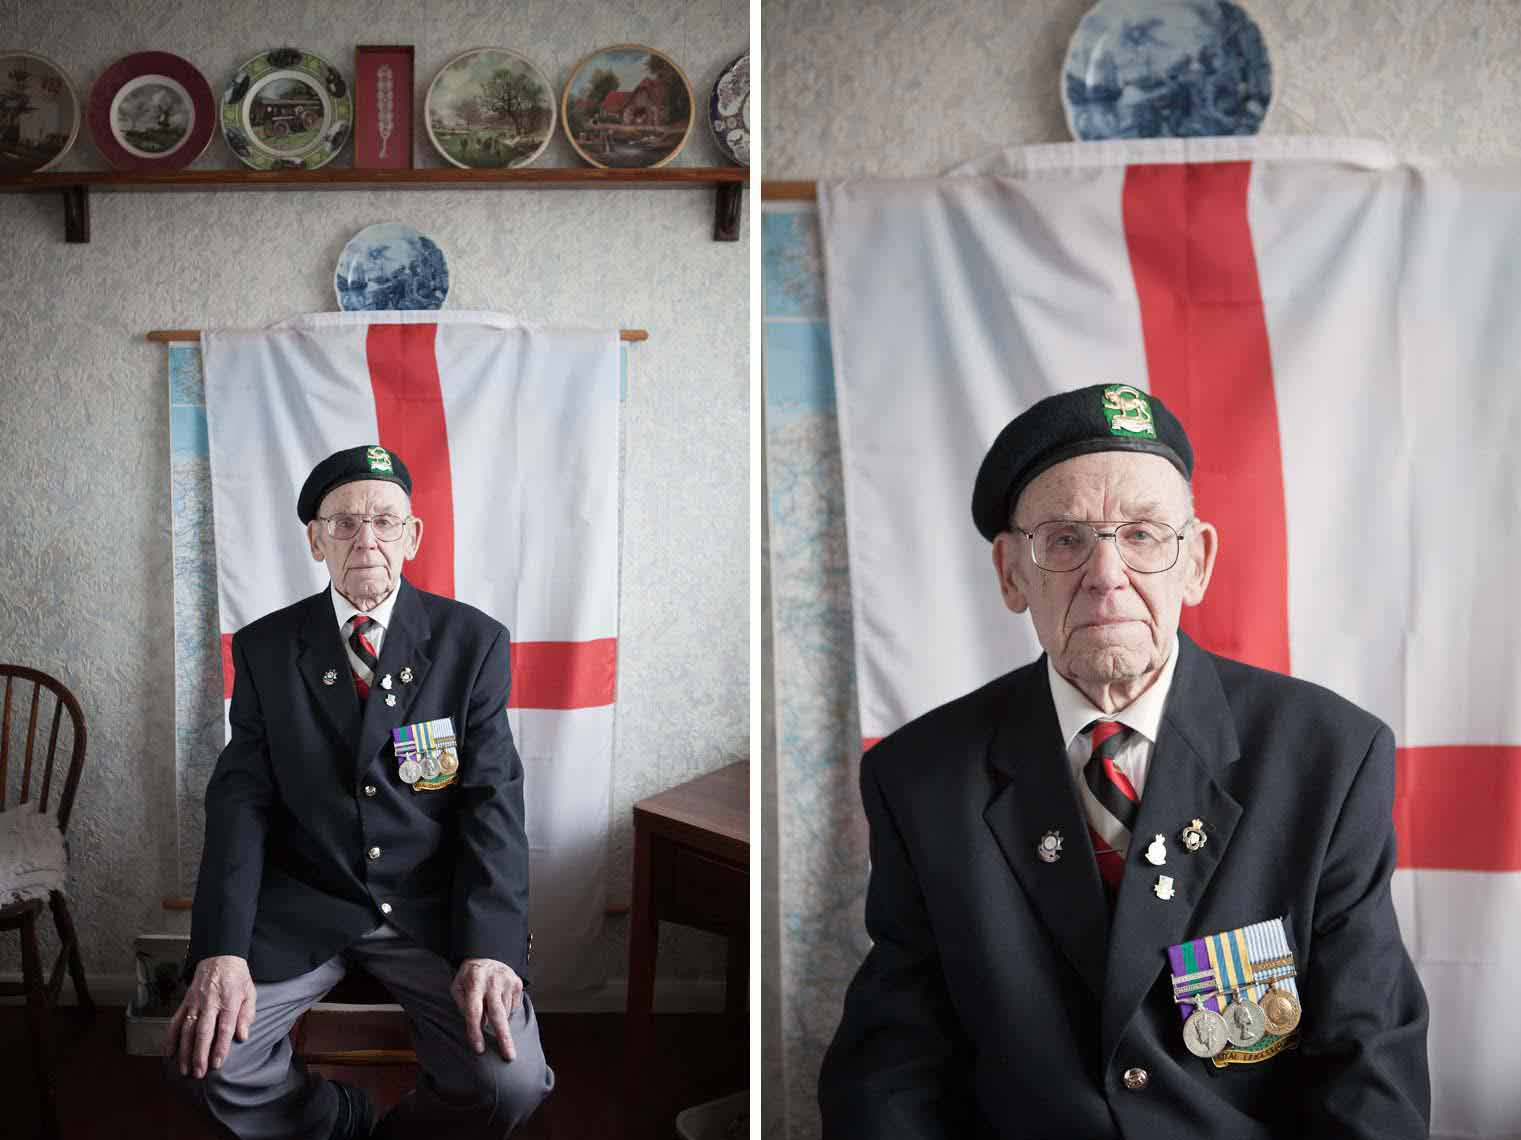 Eric French_The British Legion